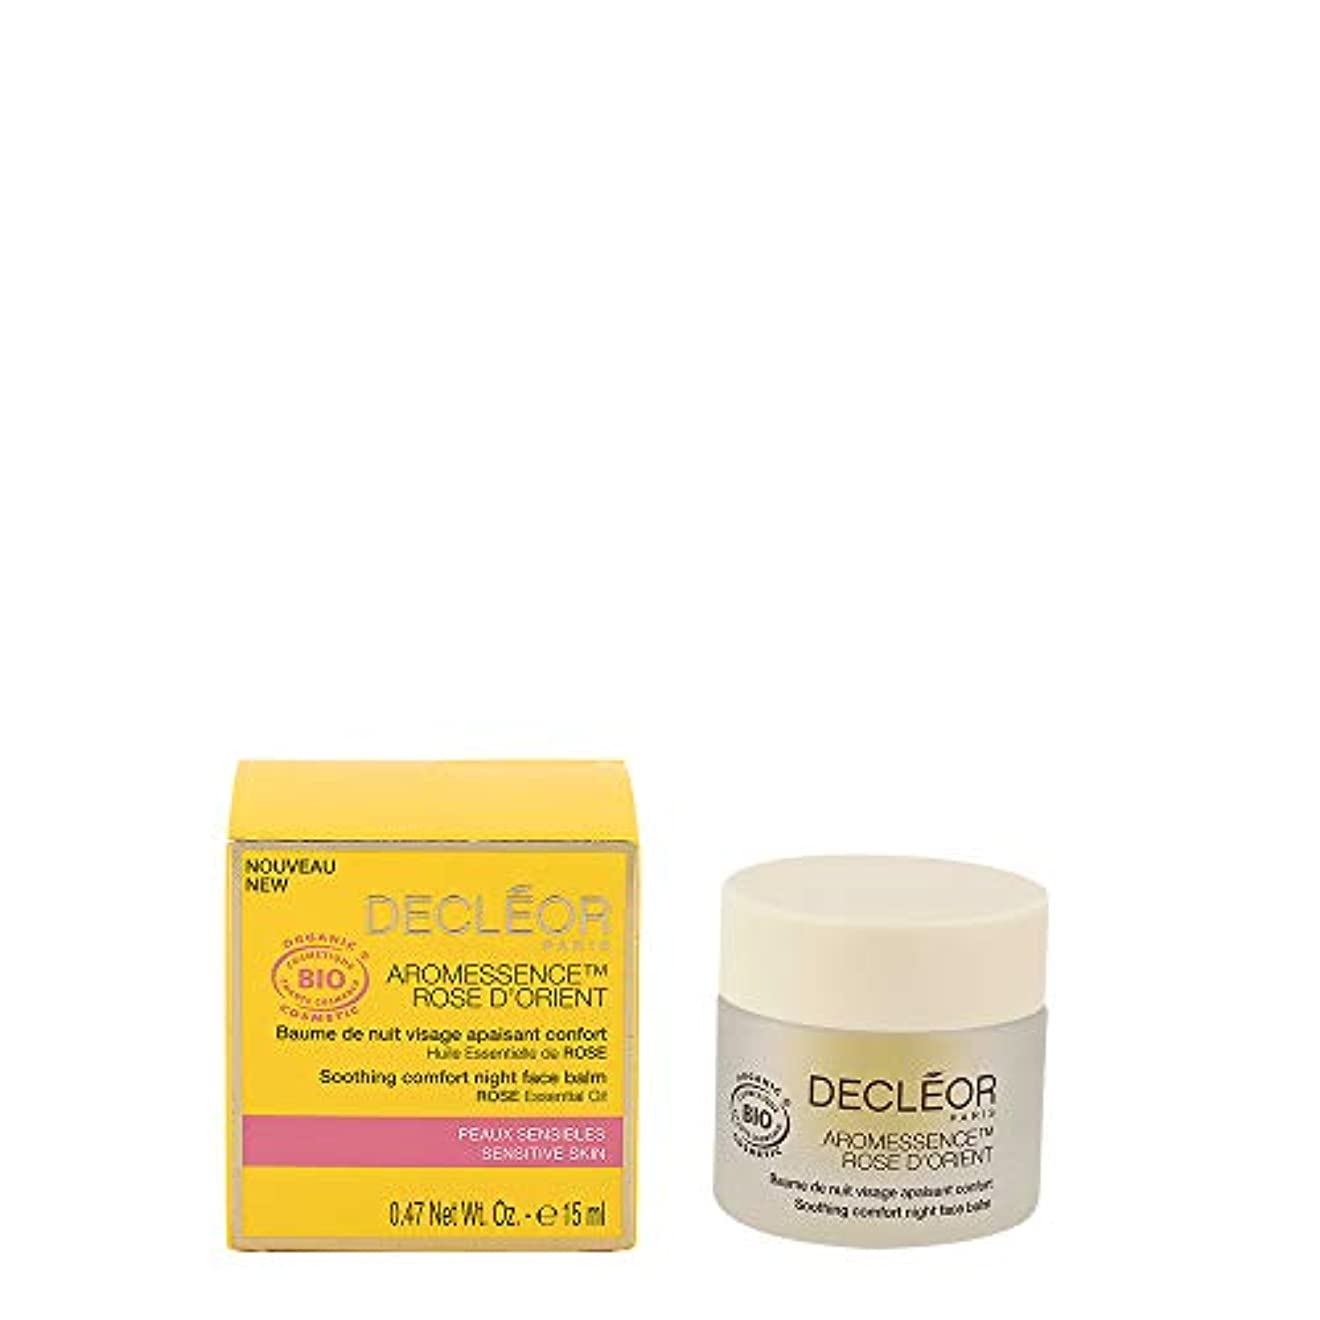 振る舞いよりどっちでもデクレオール Aromessence Rose D'Orient Soothing Comfort Night Face Balm - For Sensitive Skin 15ml/0.47oz並行輸入品